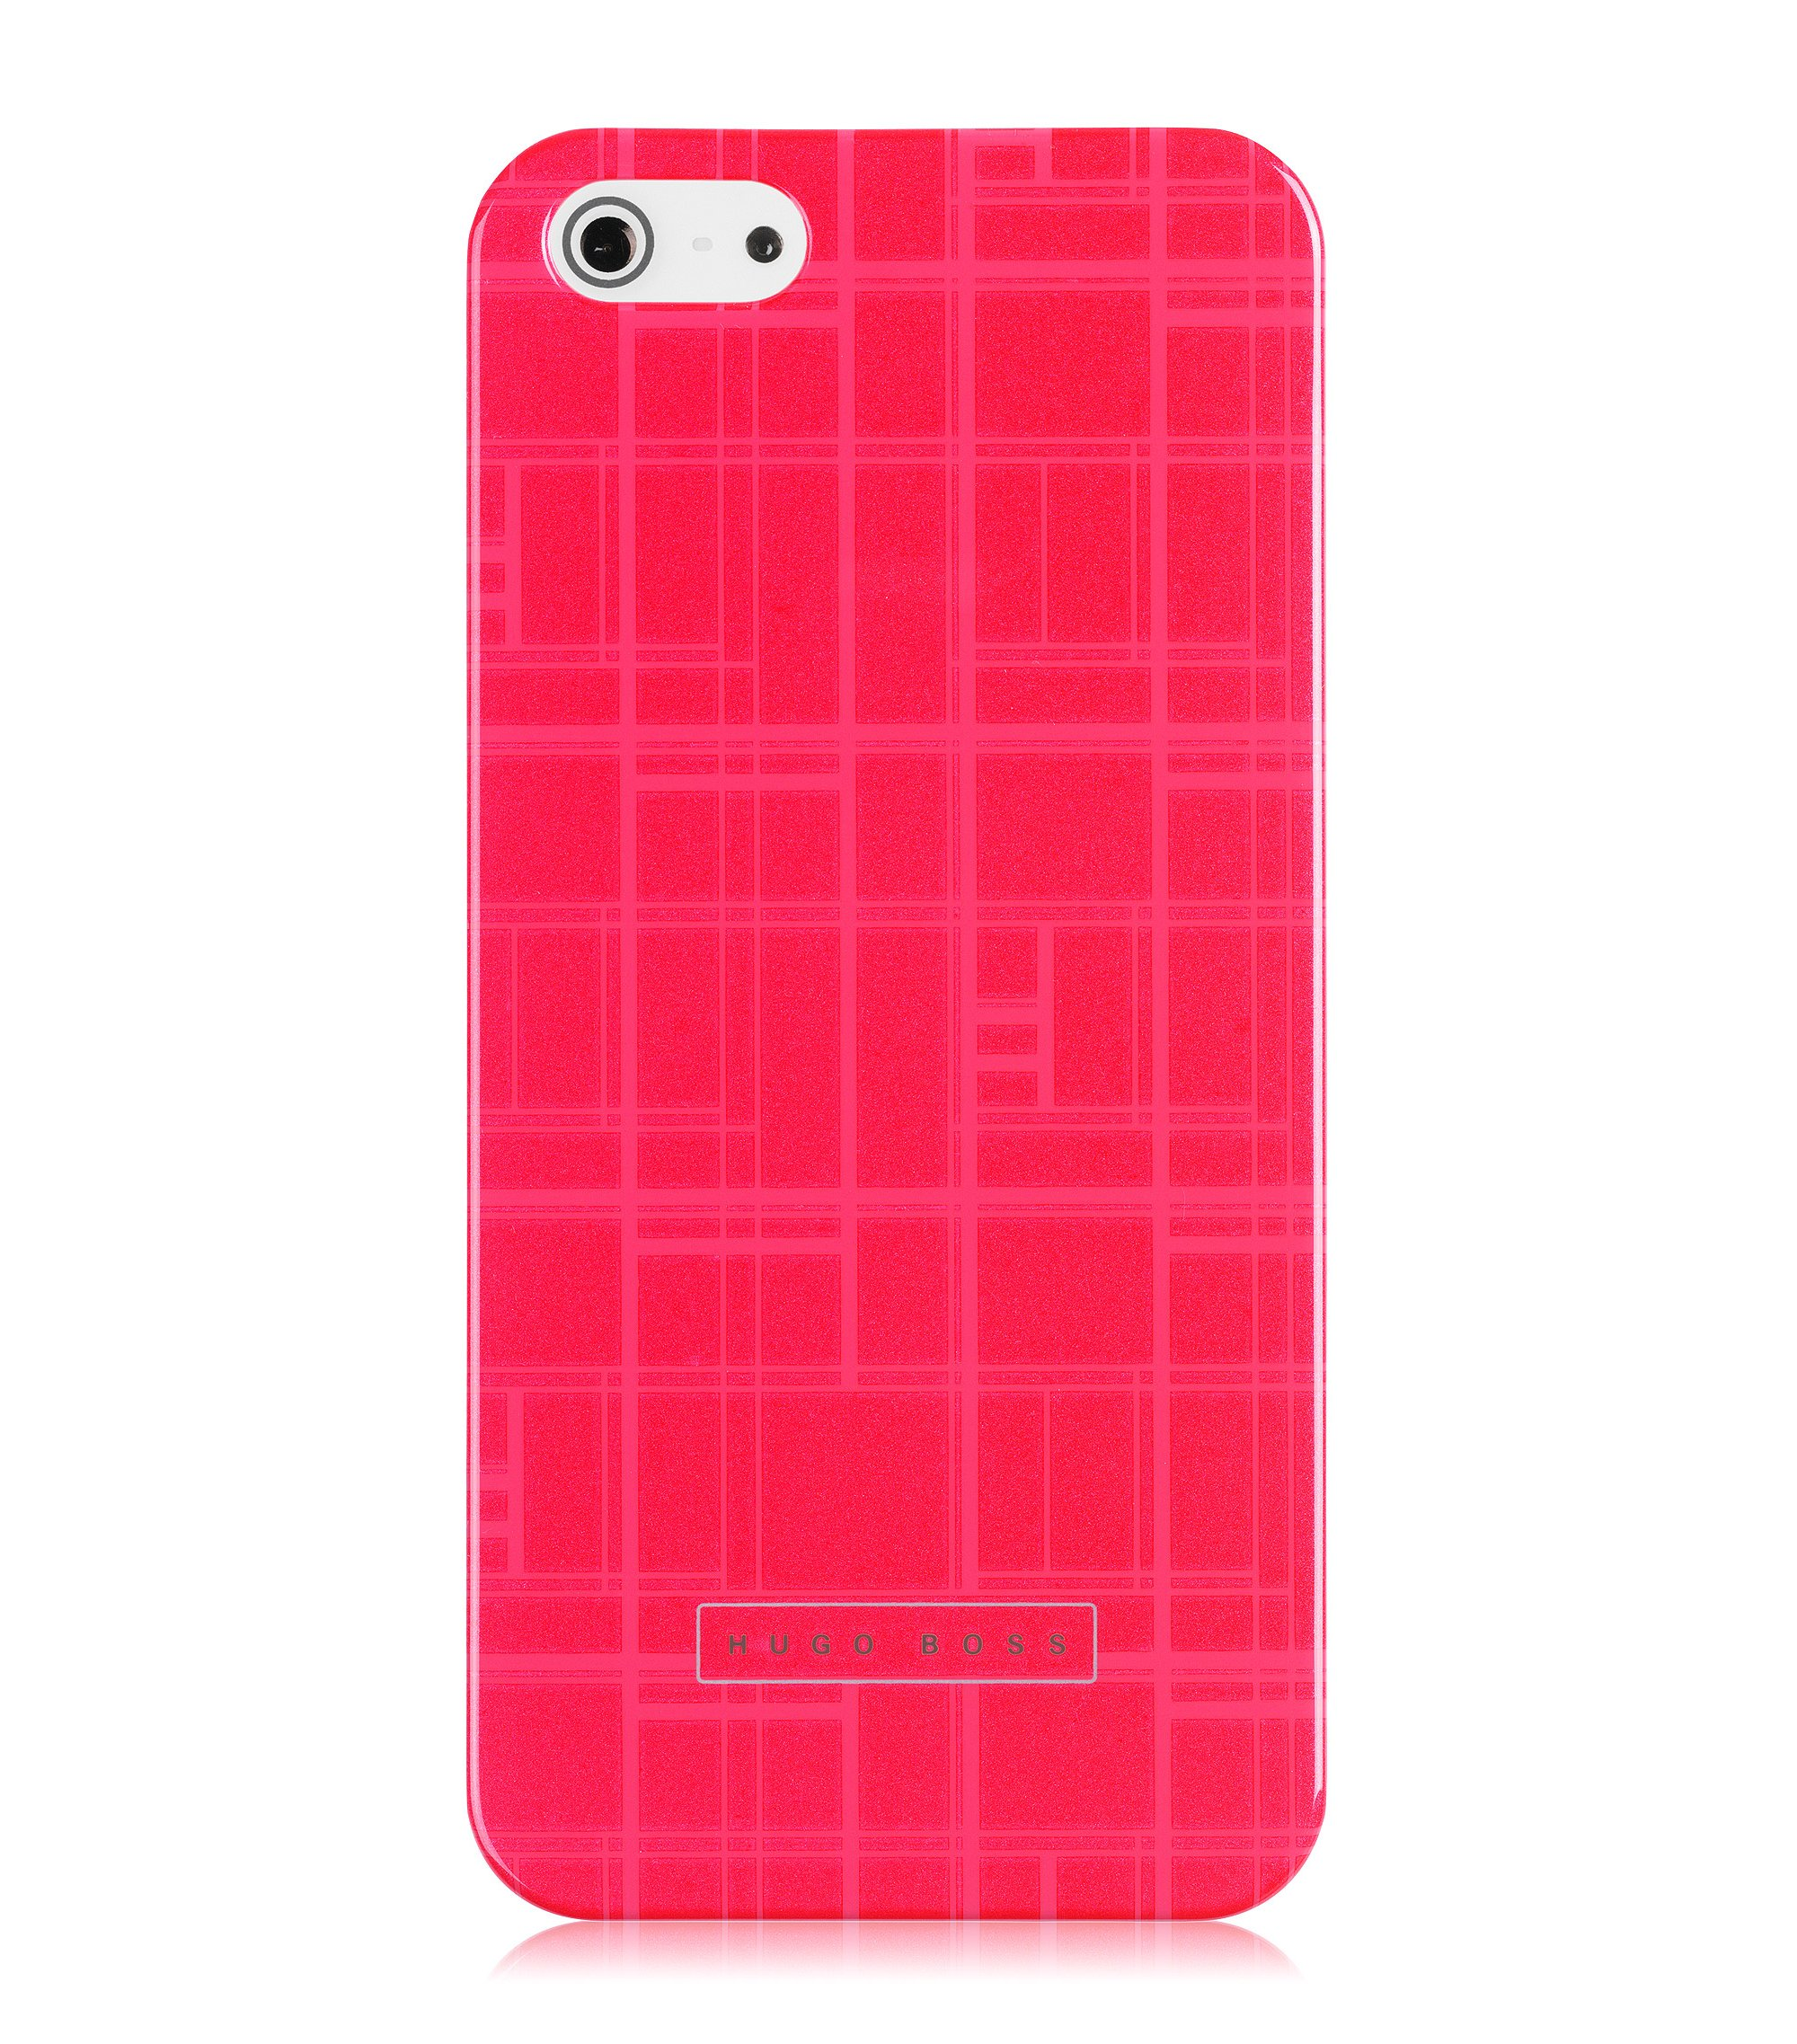 Hard Cover ´Catwalk IP5 Pink`  für iPhone 5/5s, Pink